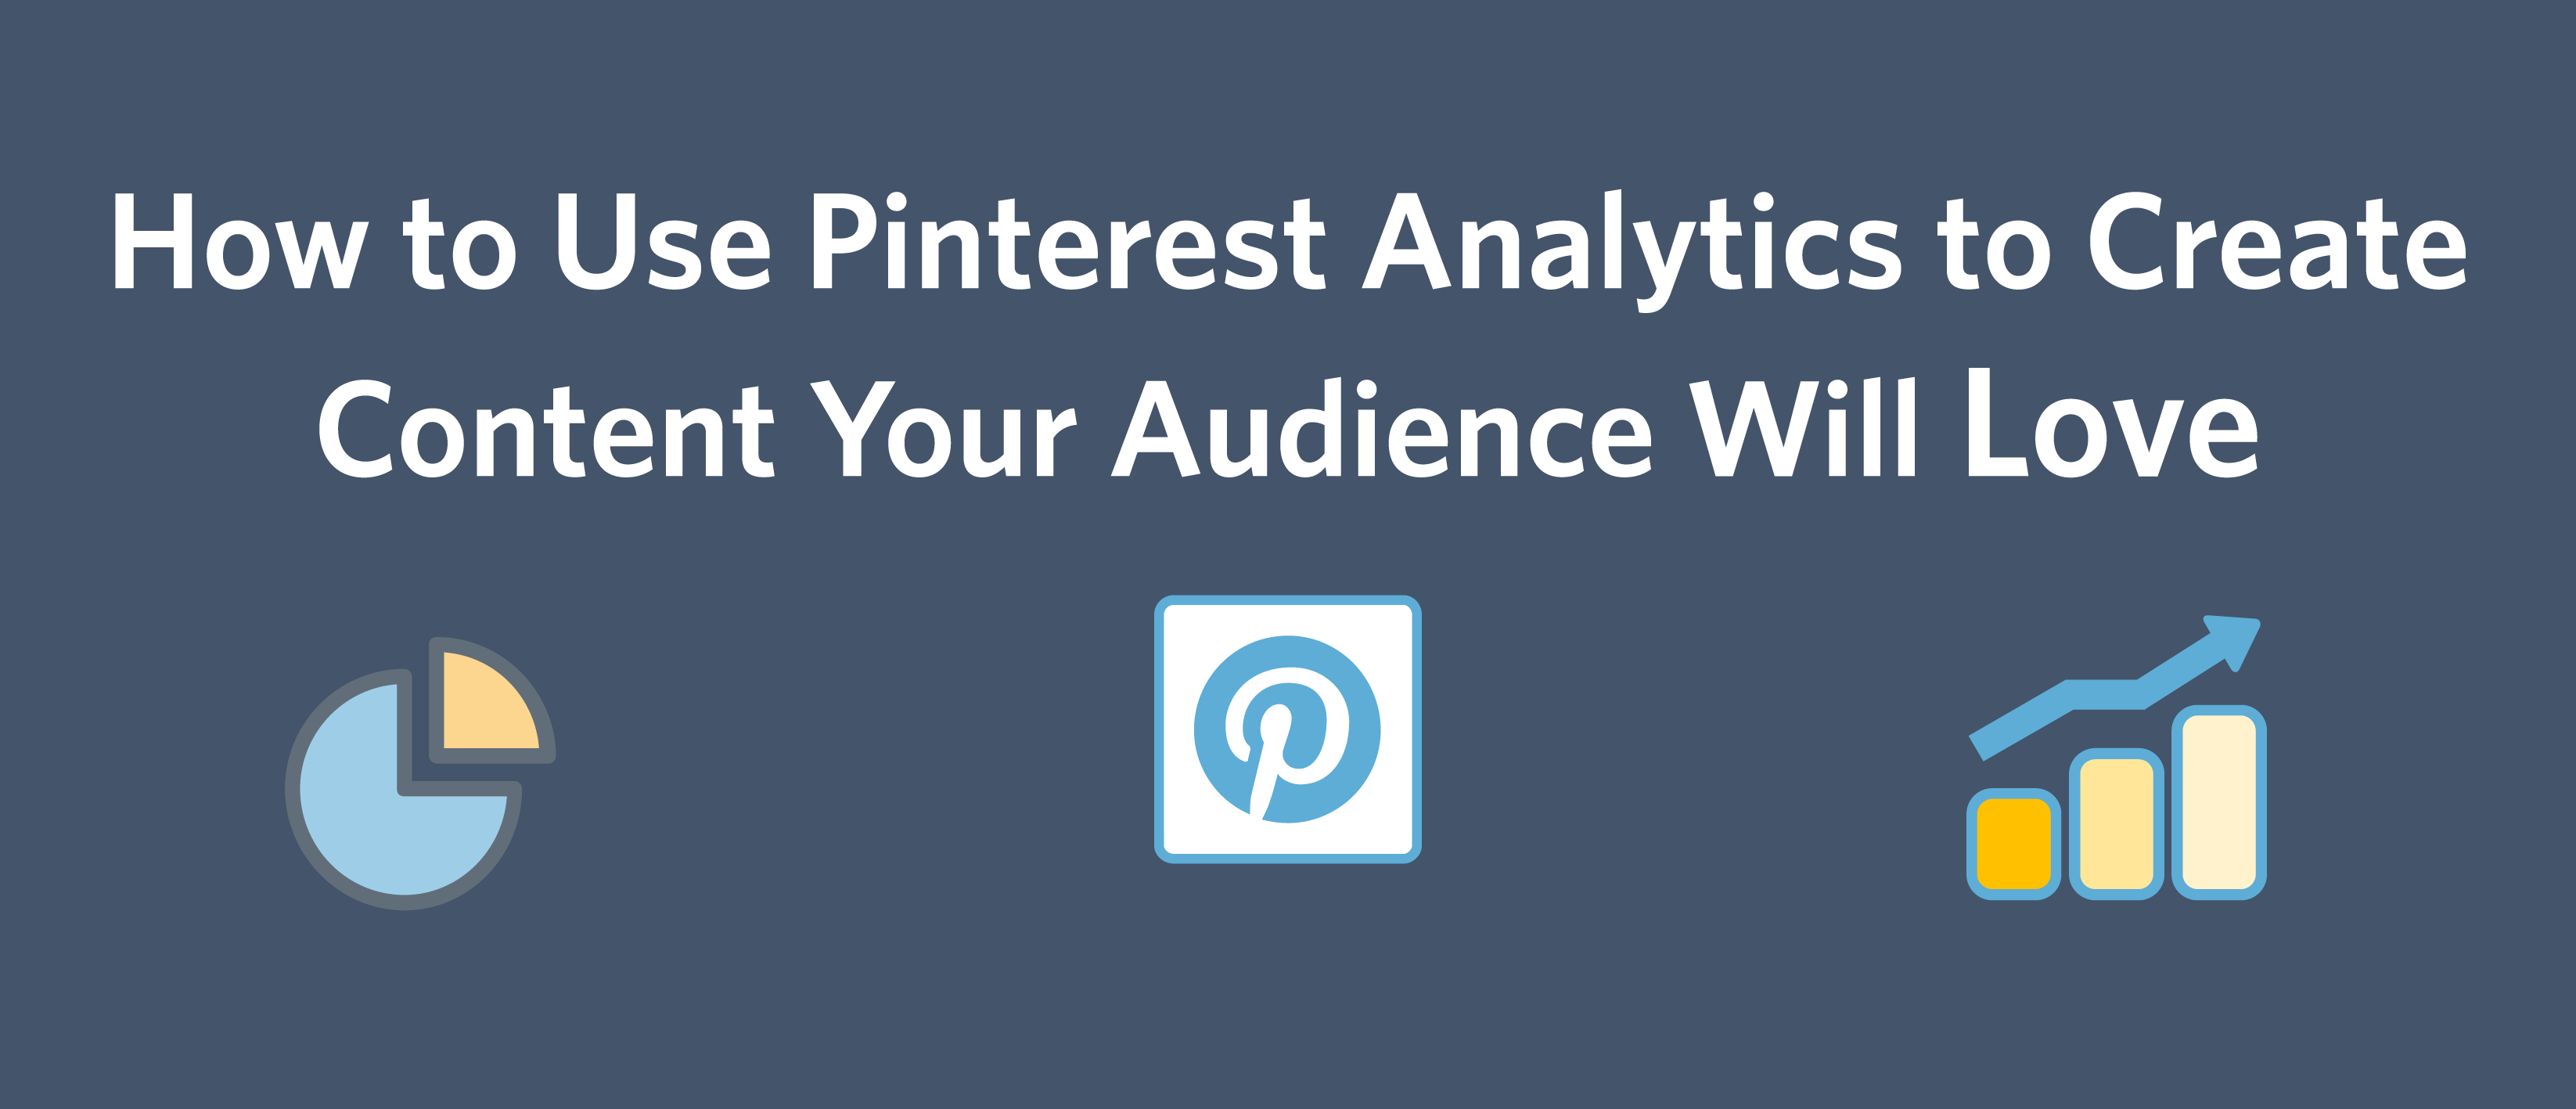 How To Use Pinterest Analytics To Create Content Your